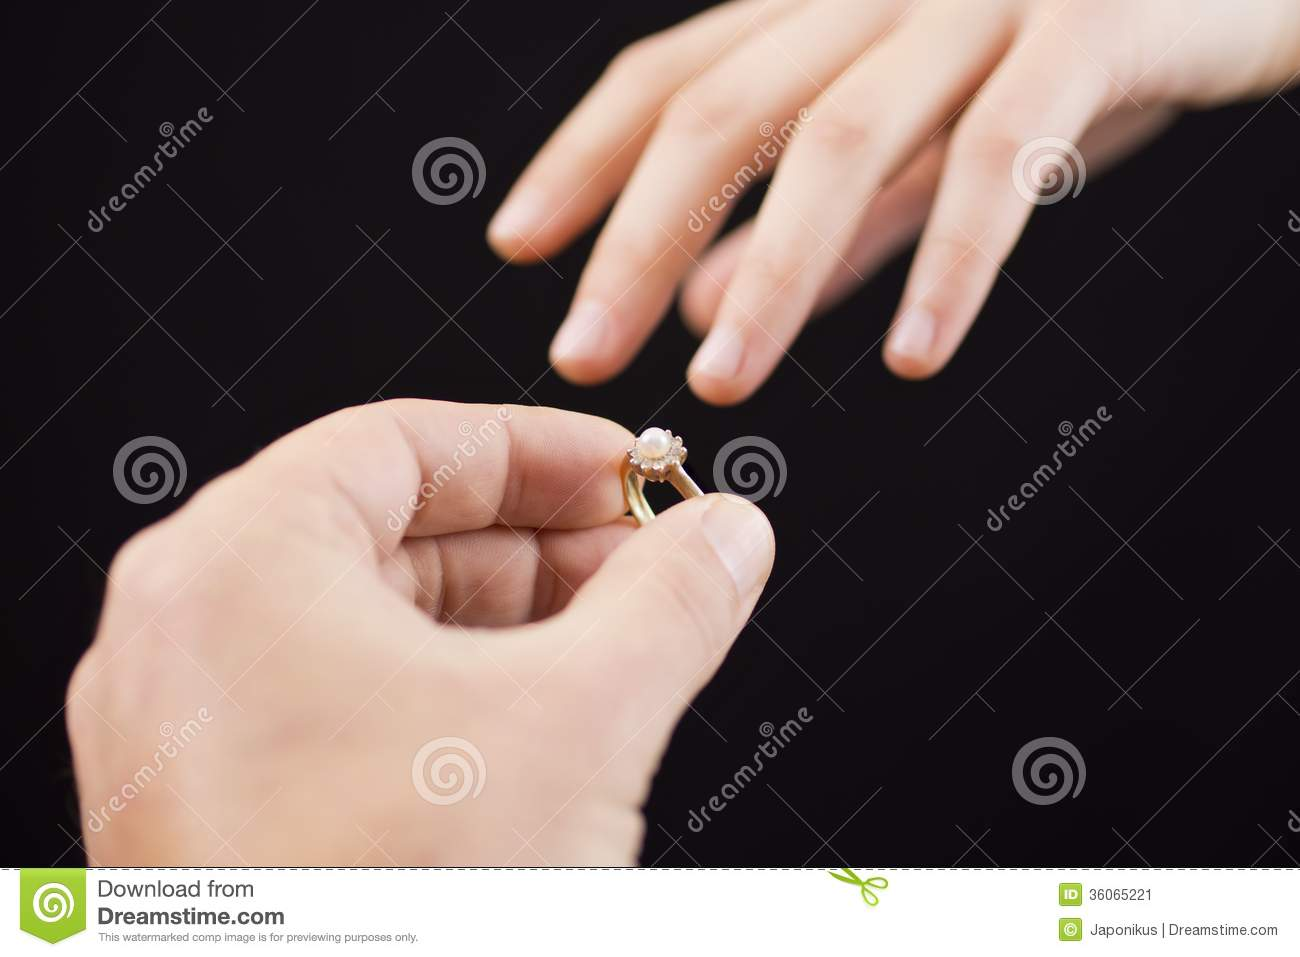 Putting A Ring On Girl\'s Hand Stock Image - Image of love, hand ...